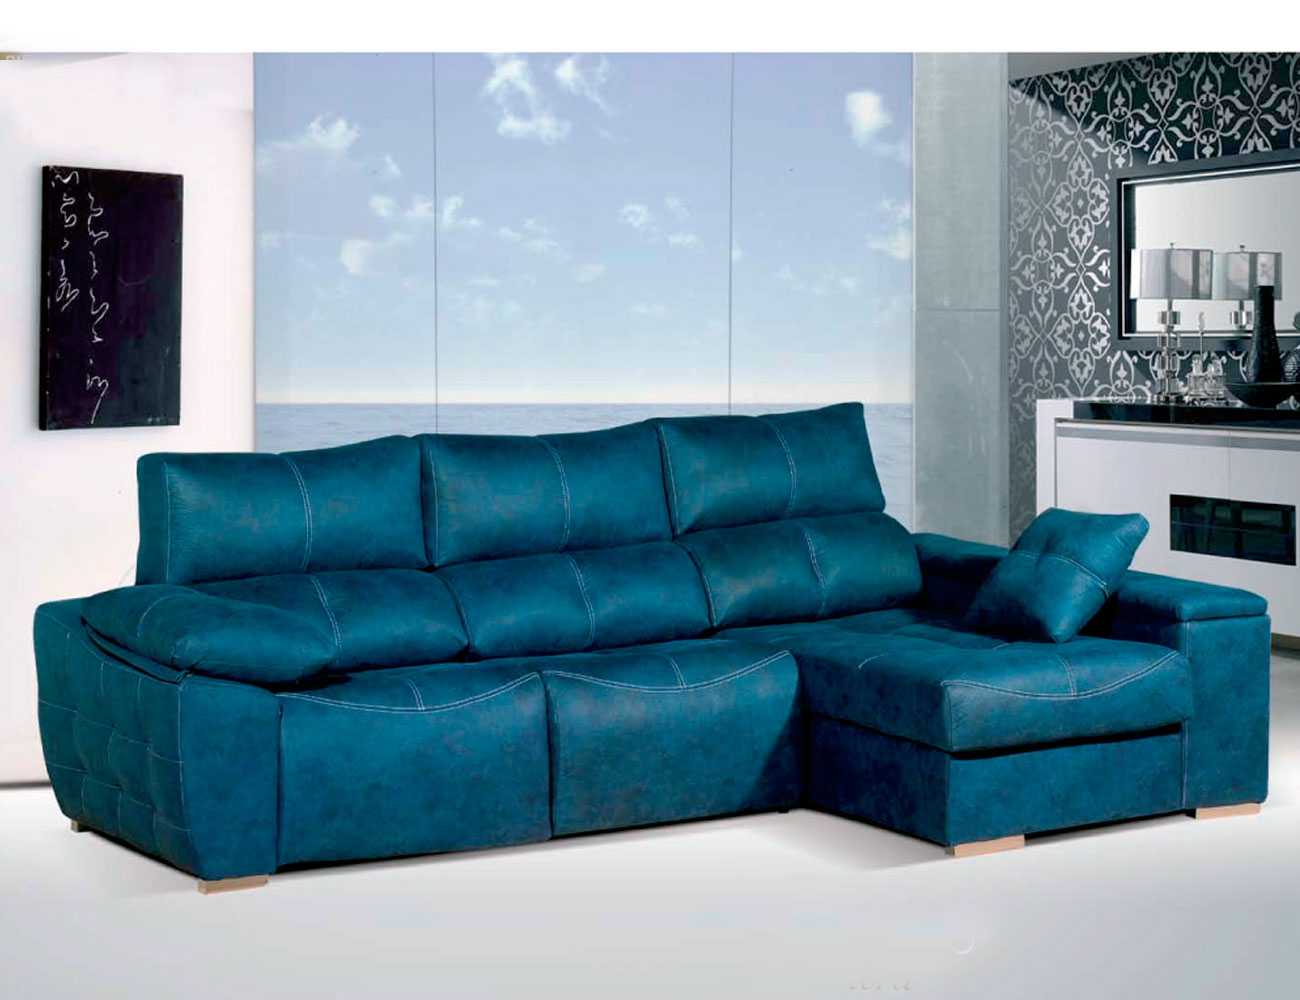 Sofa chaiselongue relax 2 motores anti manchas turquesa44